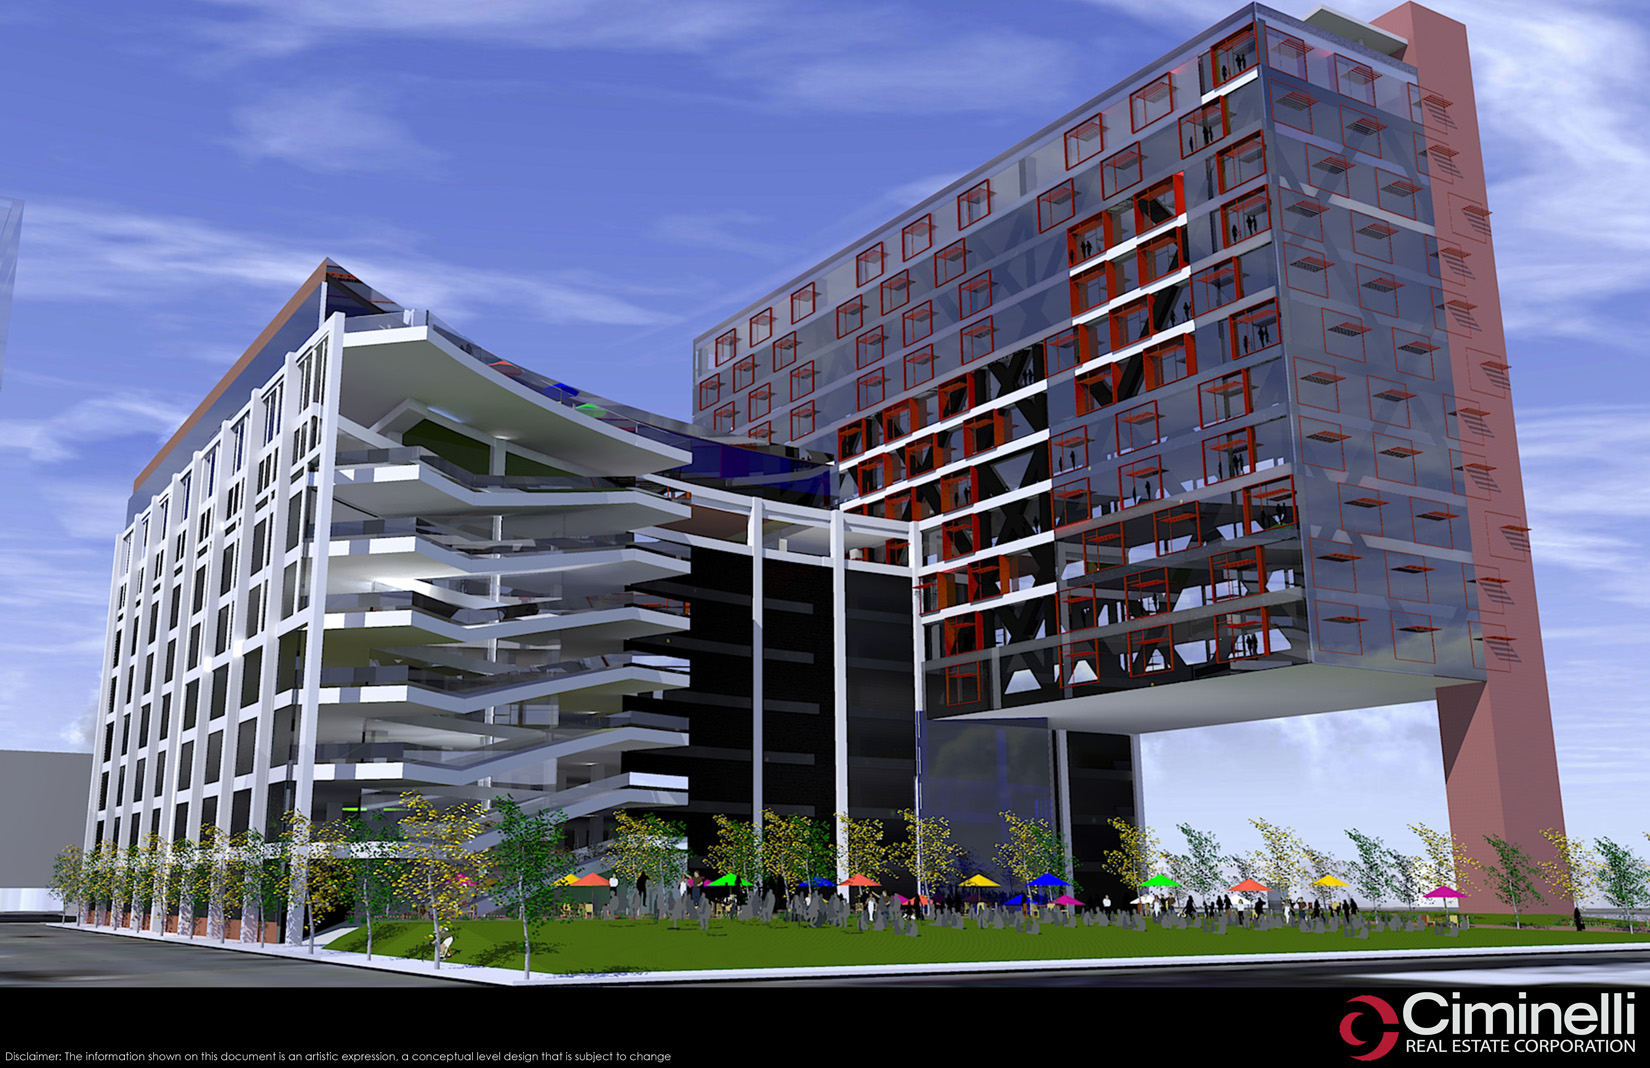 This is an early proposed rendering of the 201 Ellicott St. project, from earlier this year.